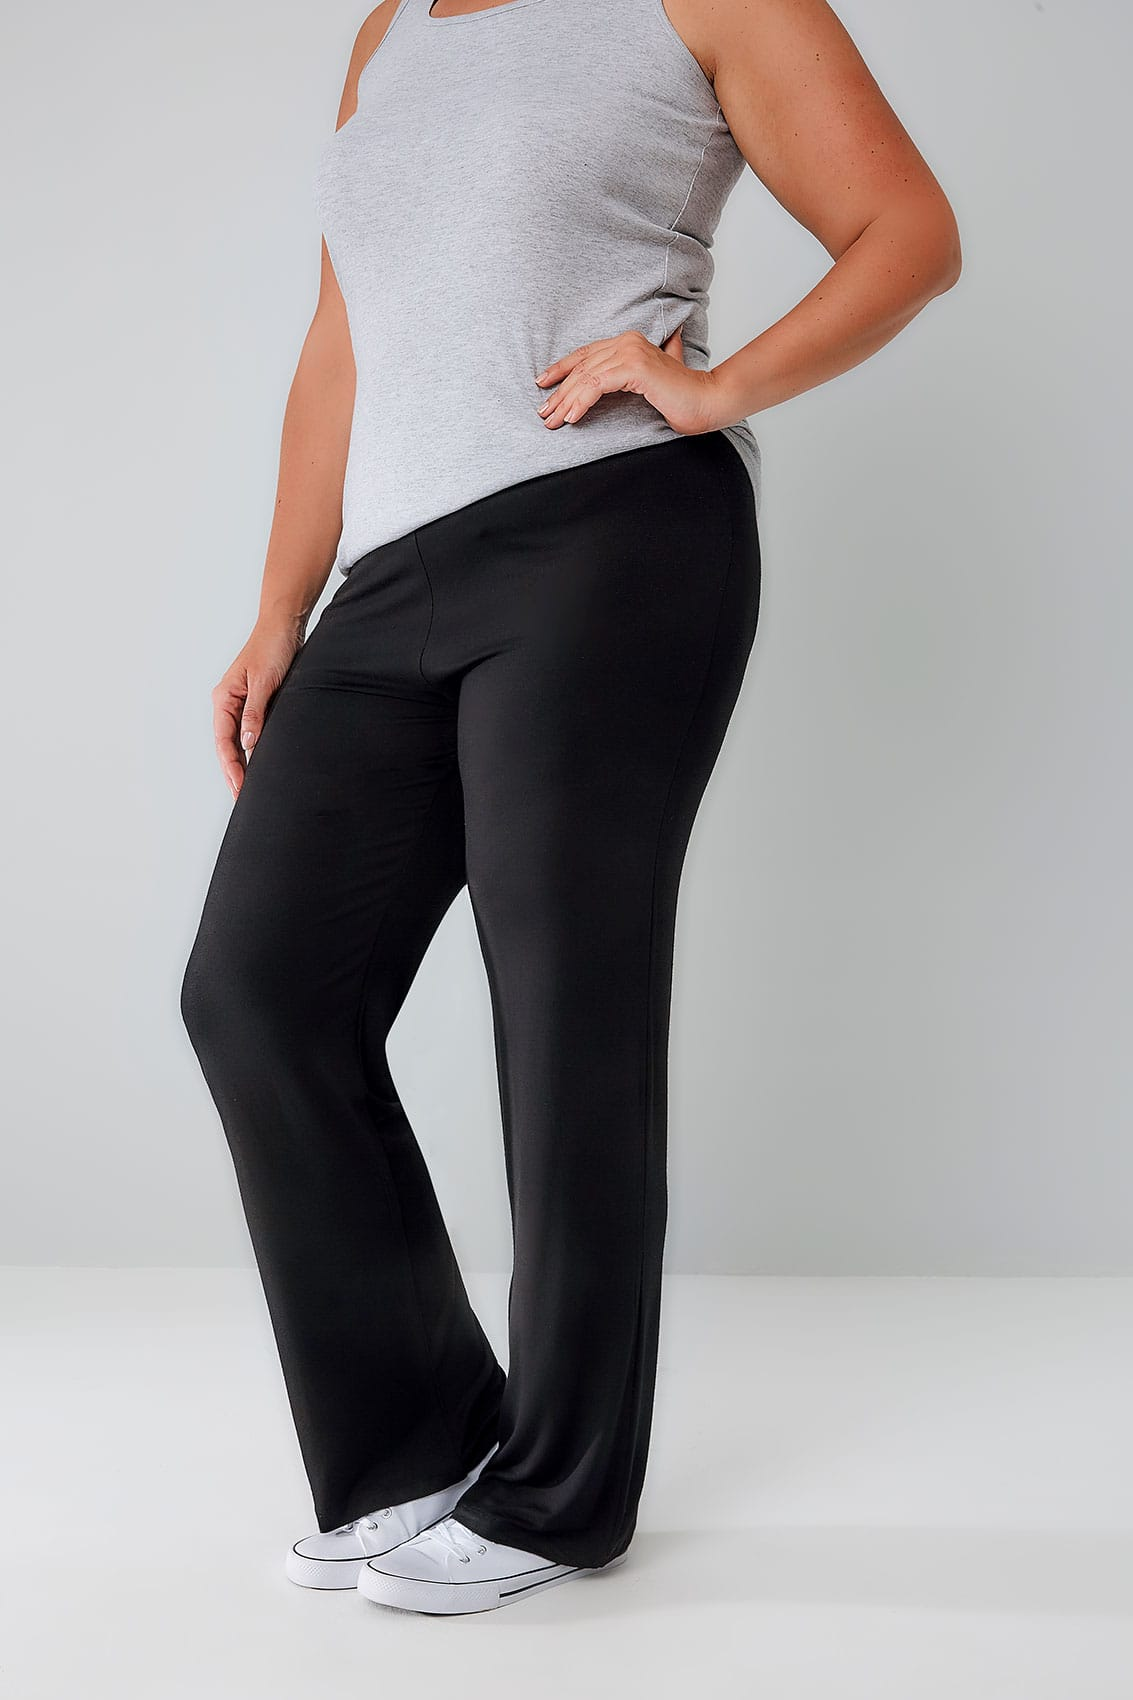 Rooms: Black Wide Leg Pull On Stretch Jersey Yoga Trousers Plus